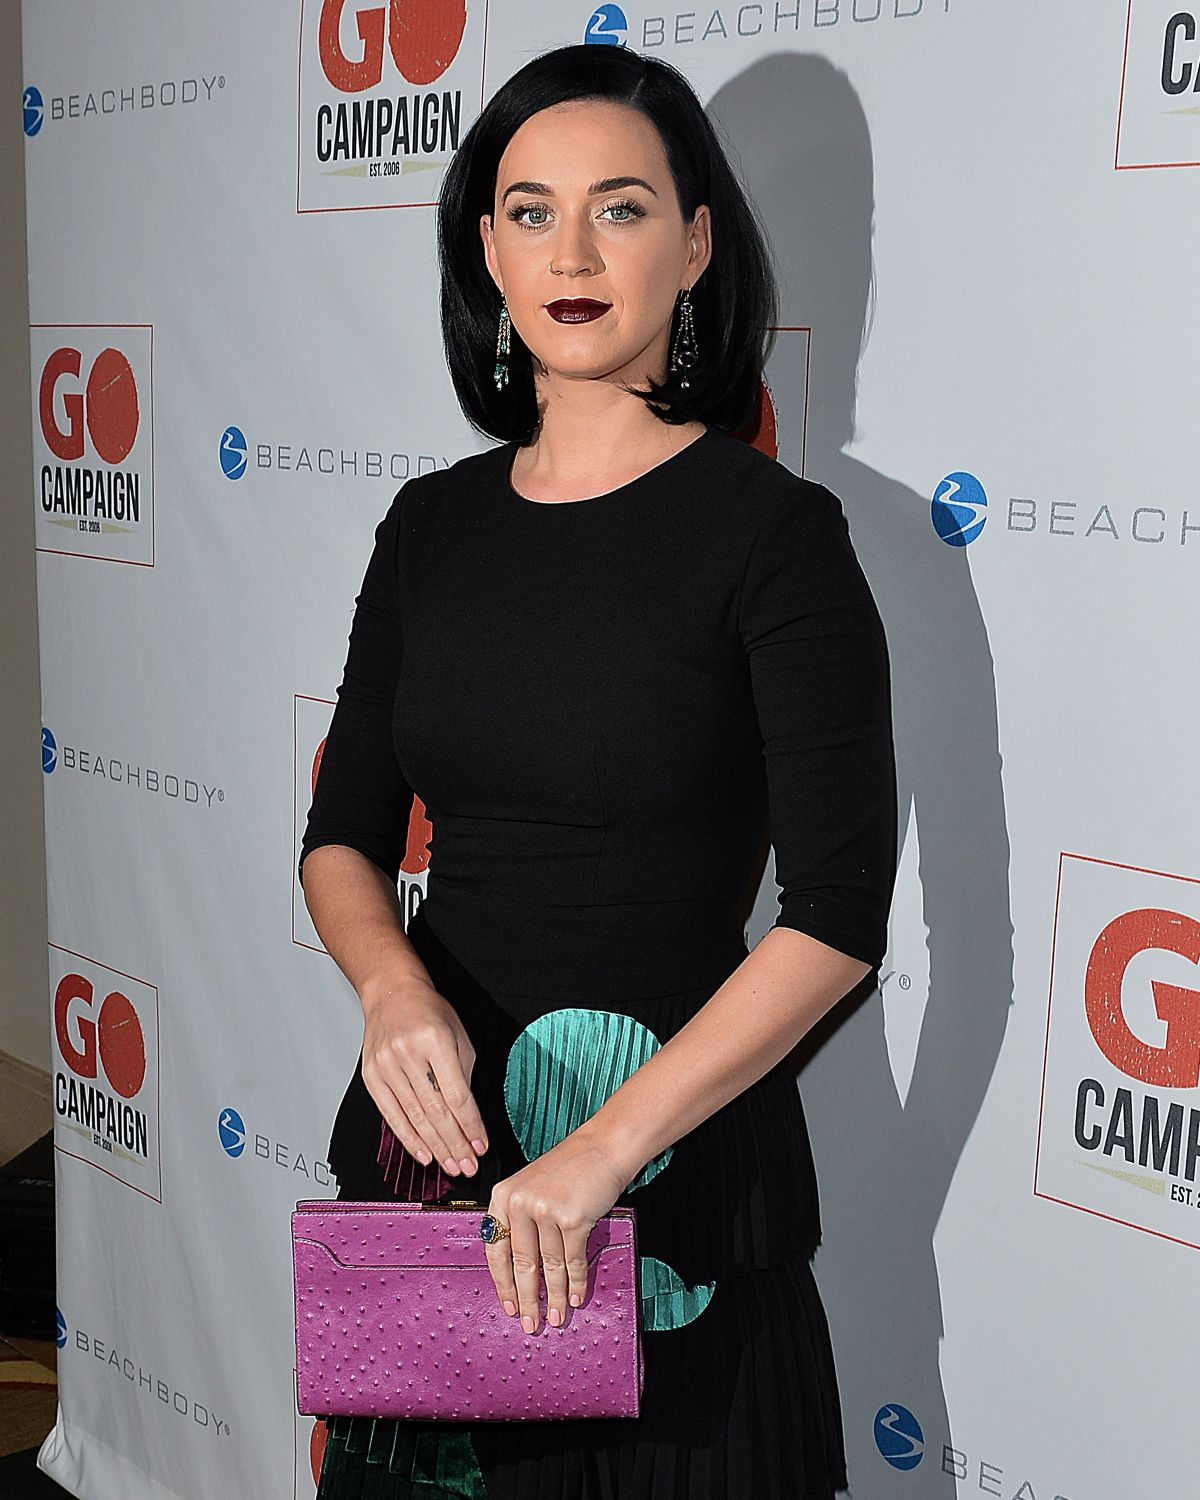 KATY PERRY at 8th Annual Go Campaign Gala in Beverly Hills 11/12/2015